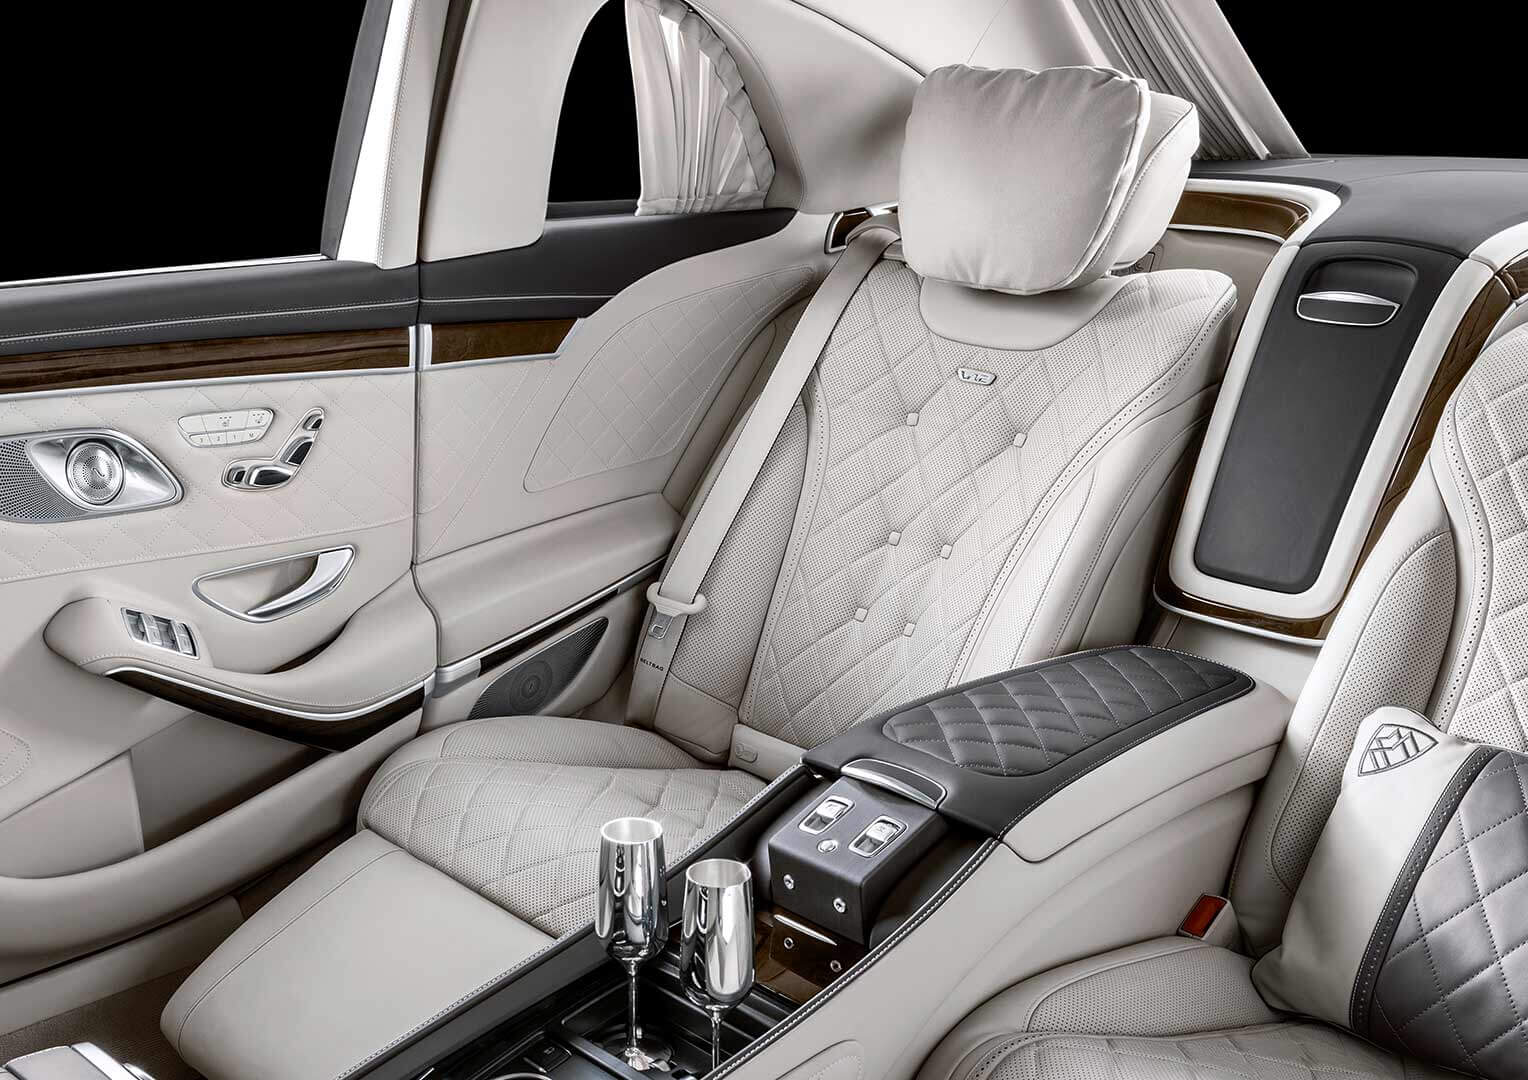 Mercedes-Maybach asientos